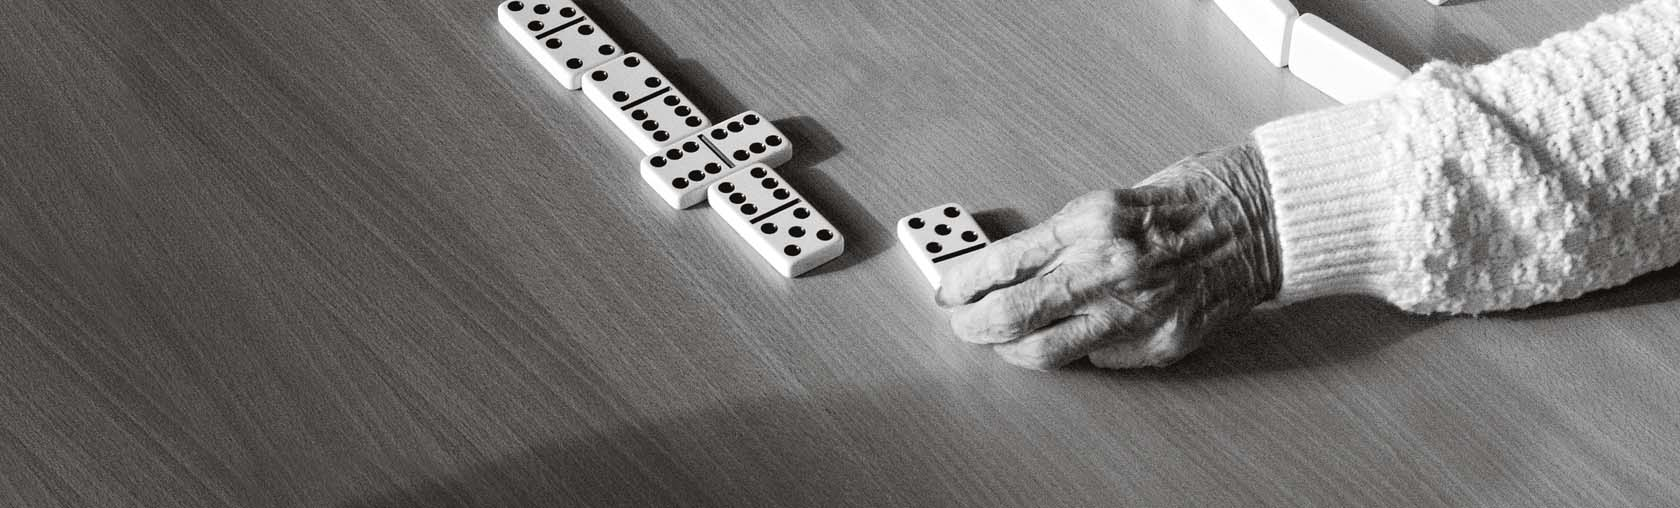 WMH-HC-ONE-DOMINOES-WEB image